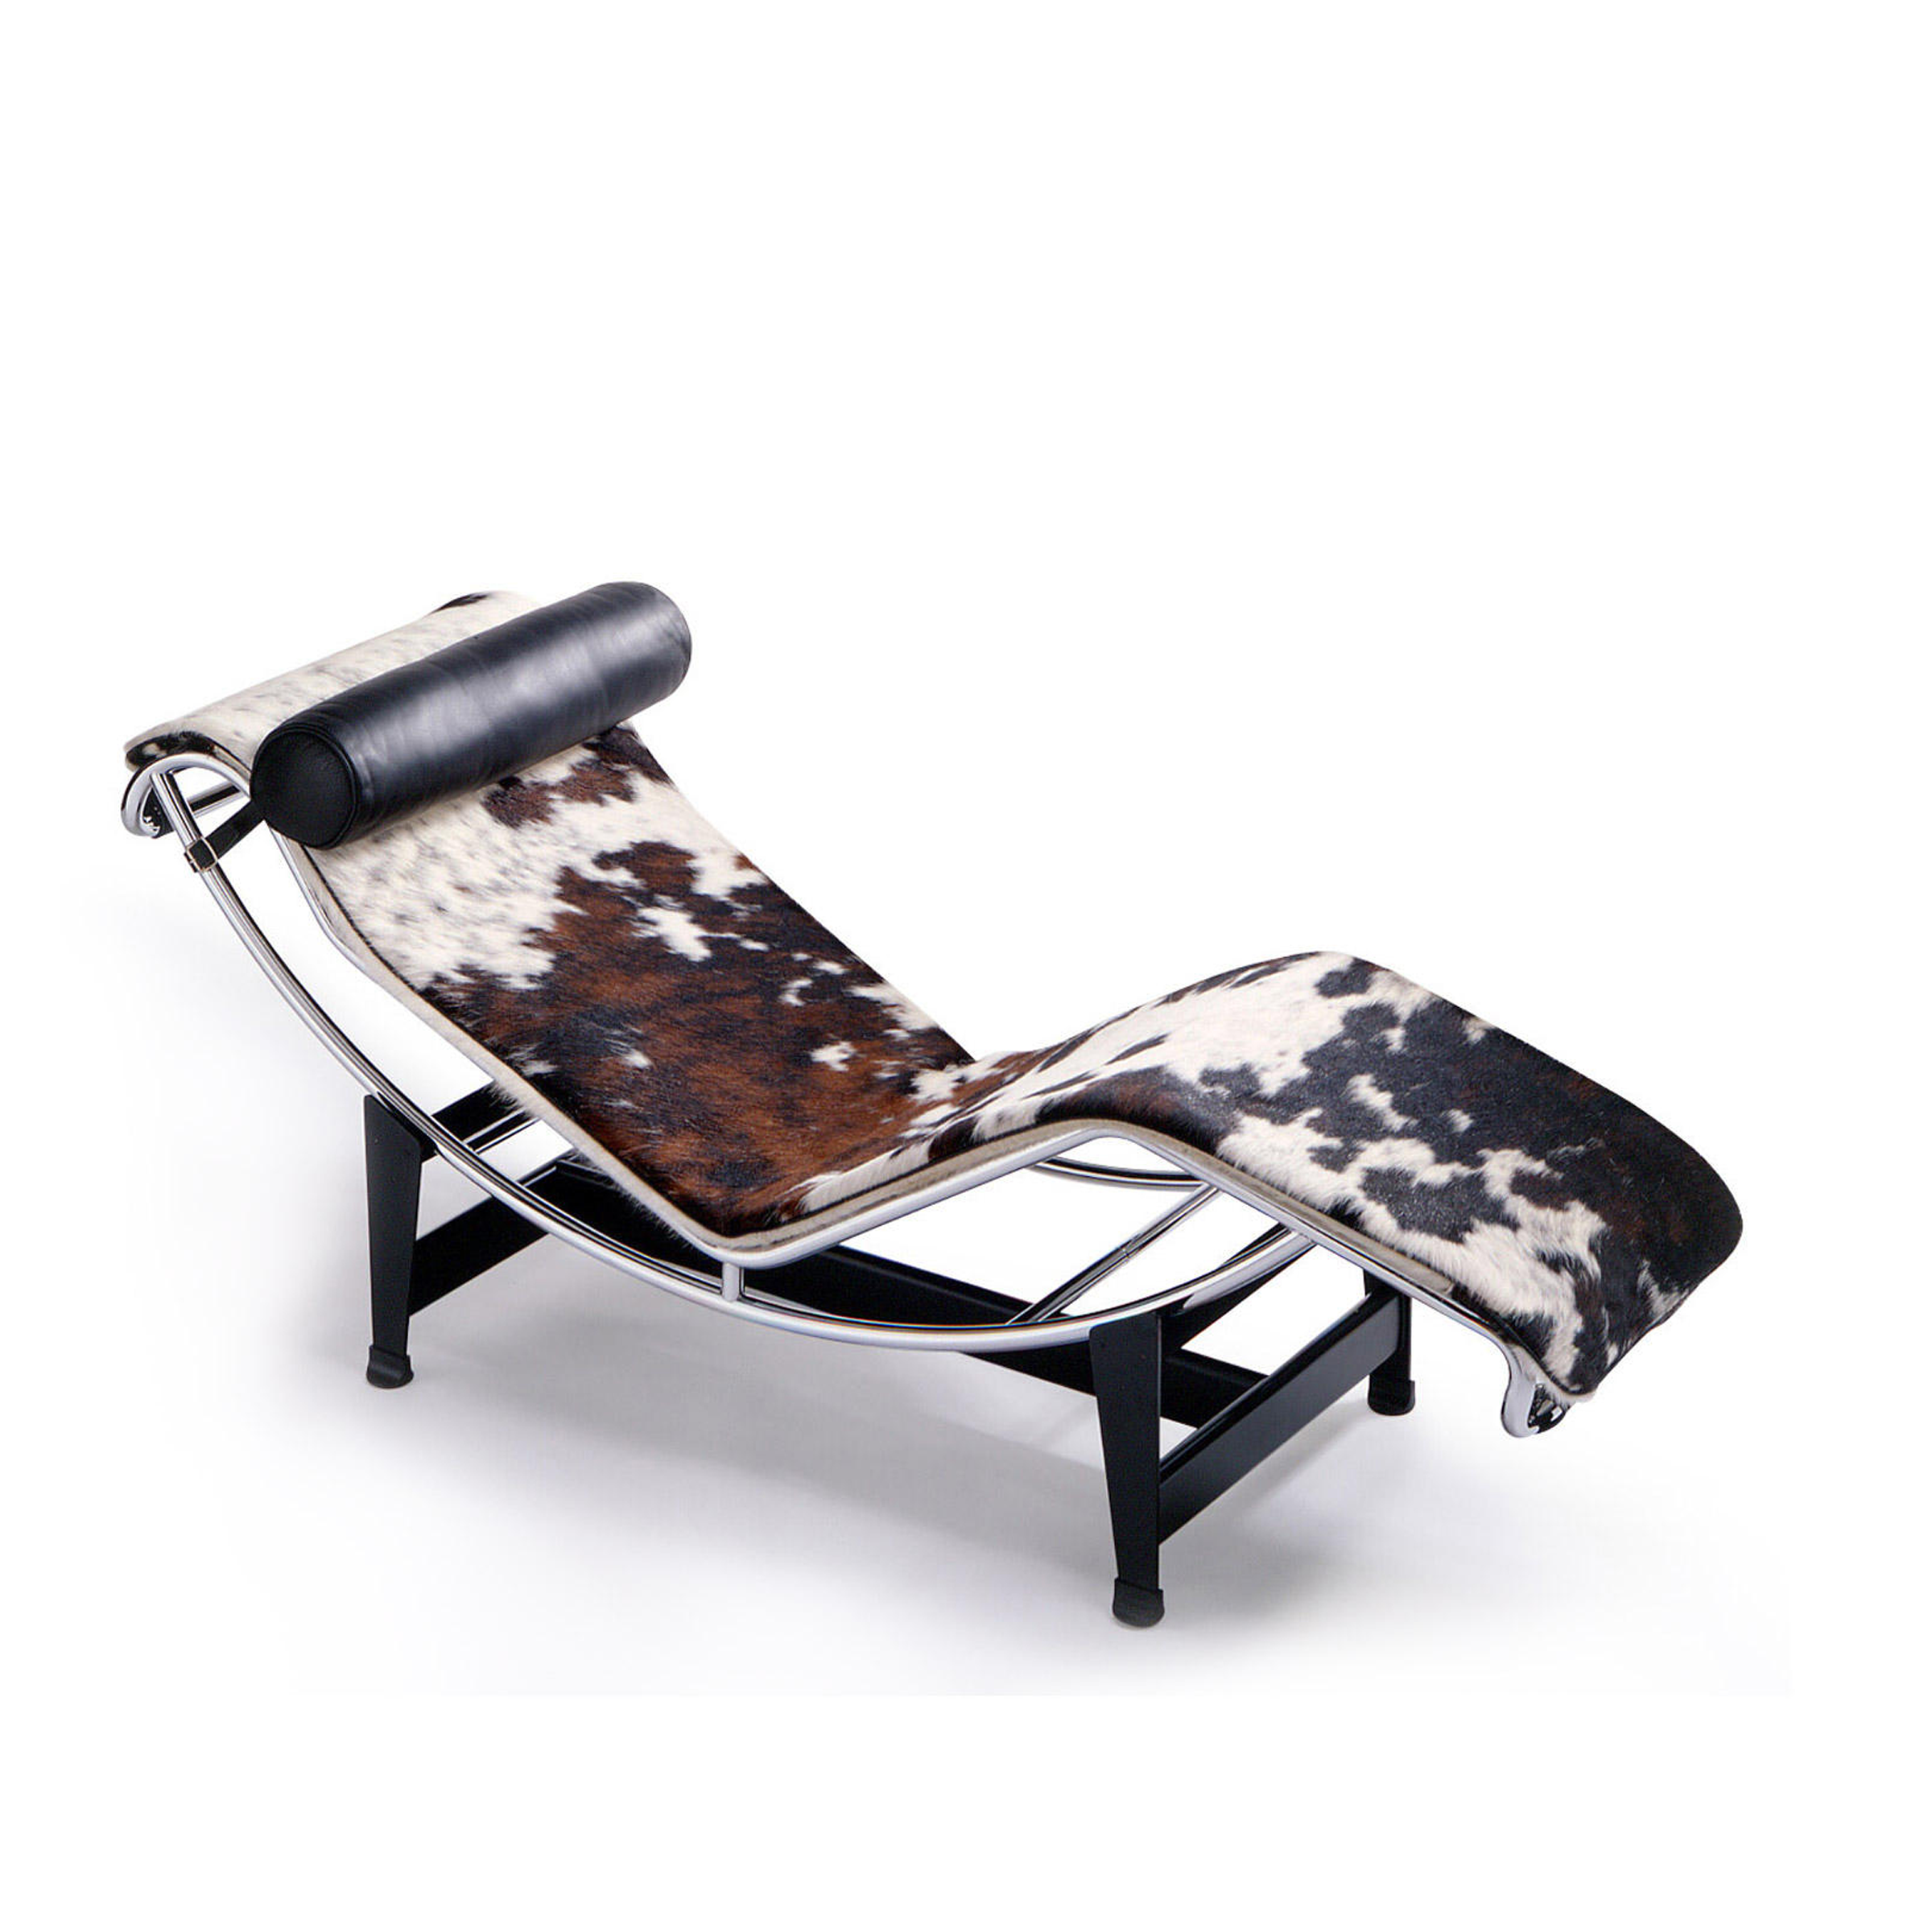 Designapplause lc4 le corbusier jeanneret perriand for Chaise longue design le corbusier